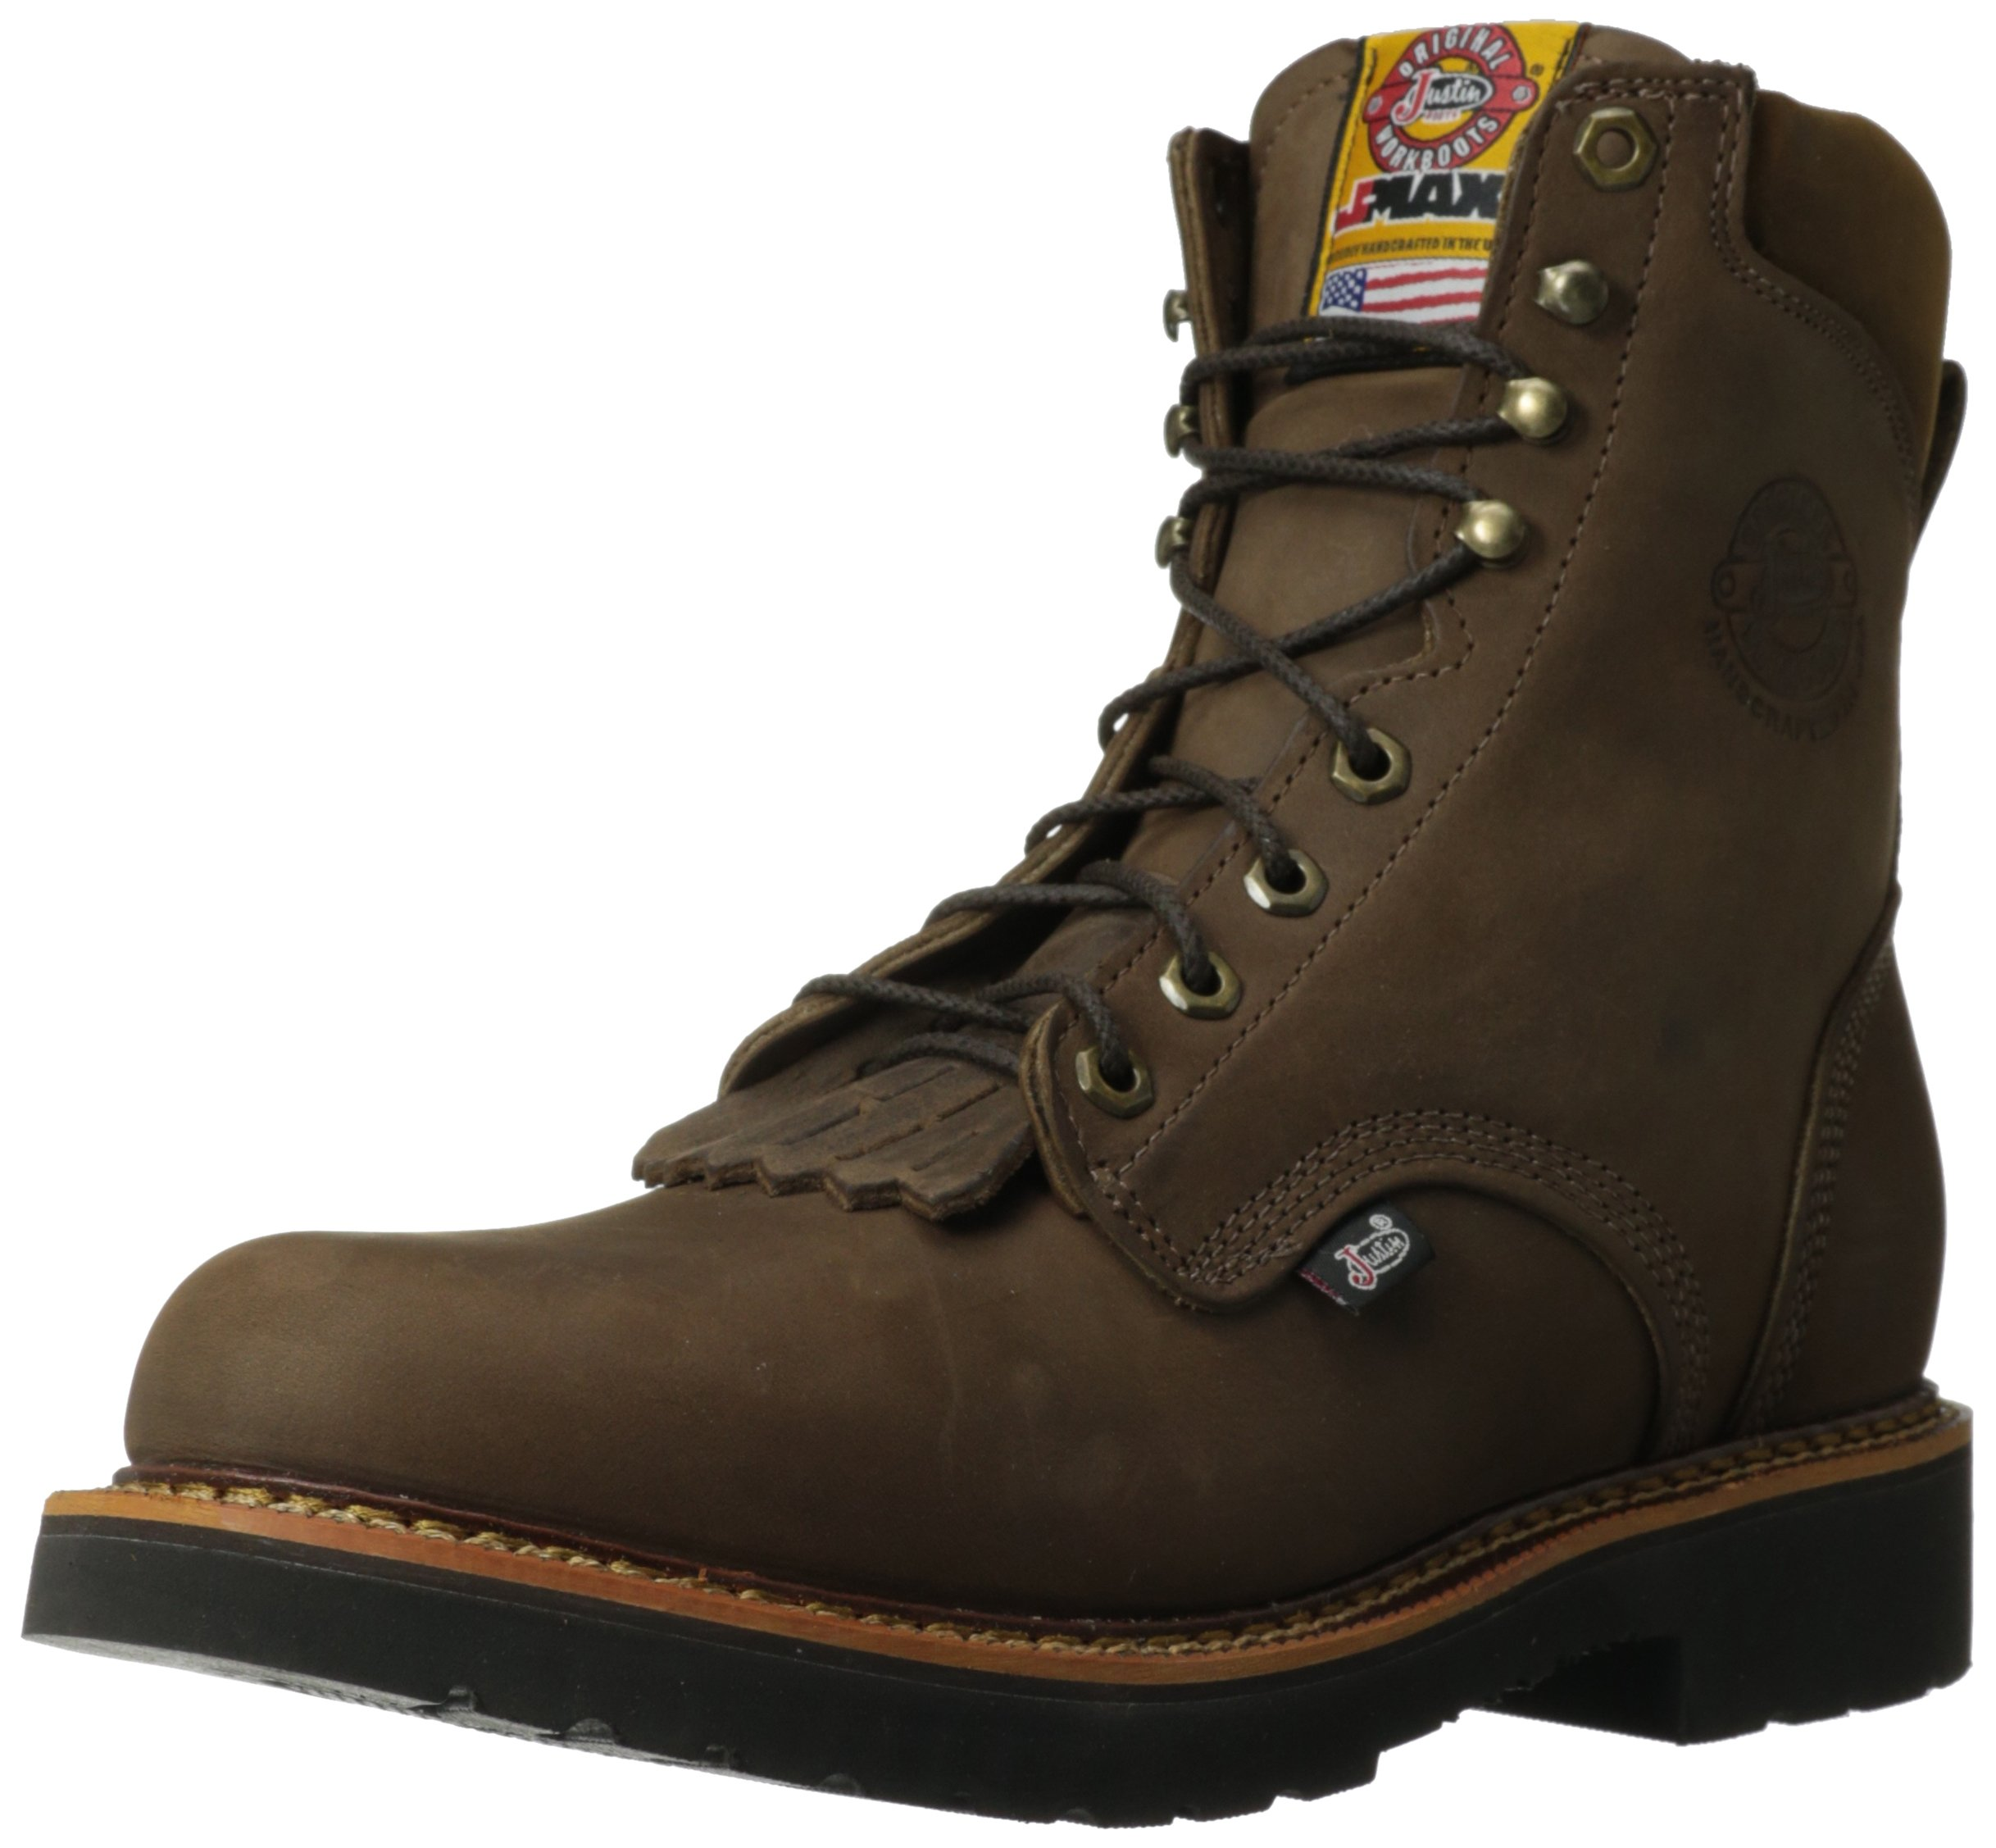 Justin Original Work Boots Men's Jmax Work Boot,Rugged Chocolate/Gaucho,11 D US